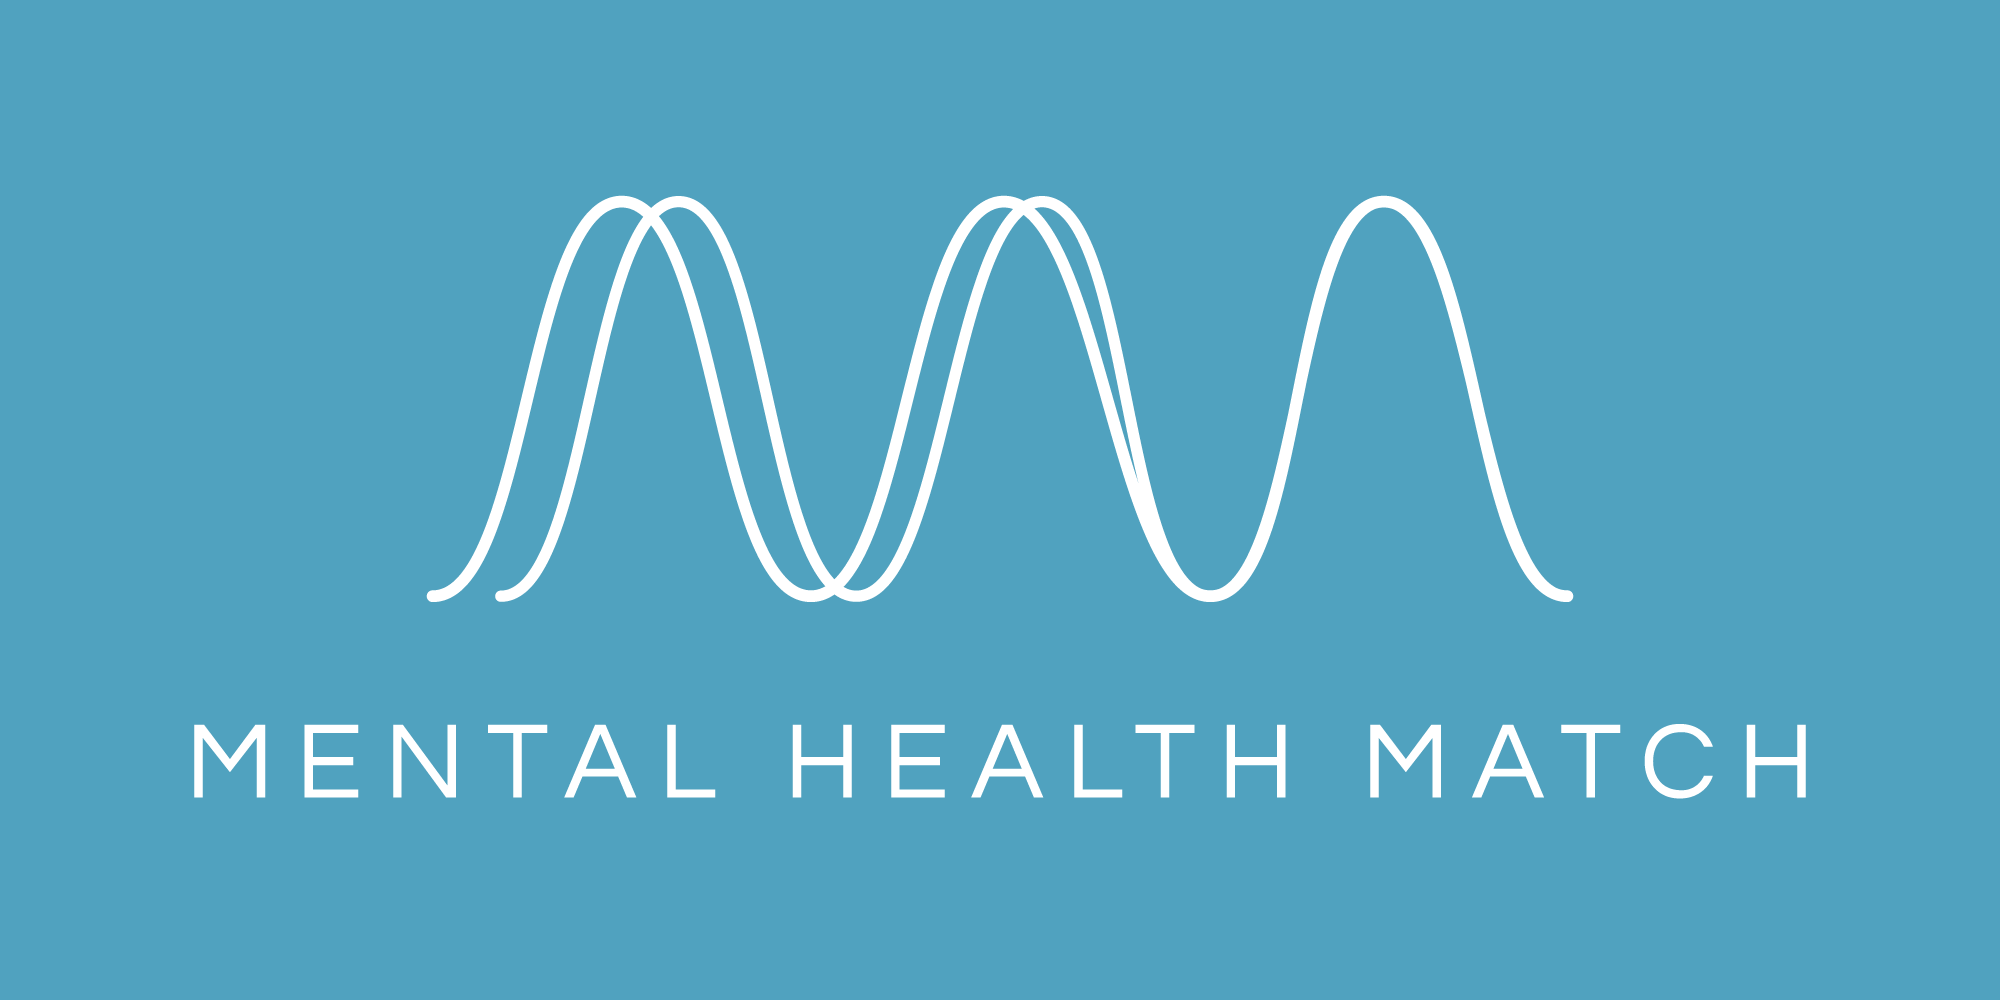 Mental_Health_Match_Logo_White_on_Blue.png